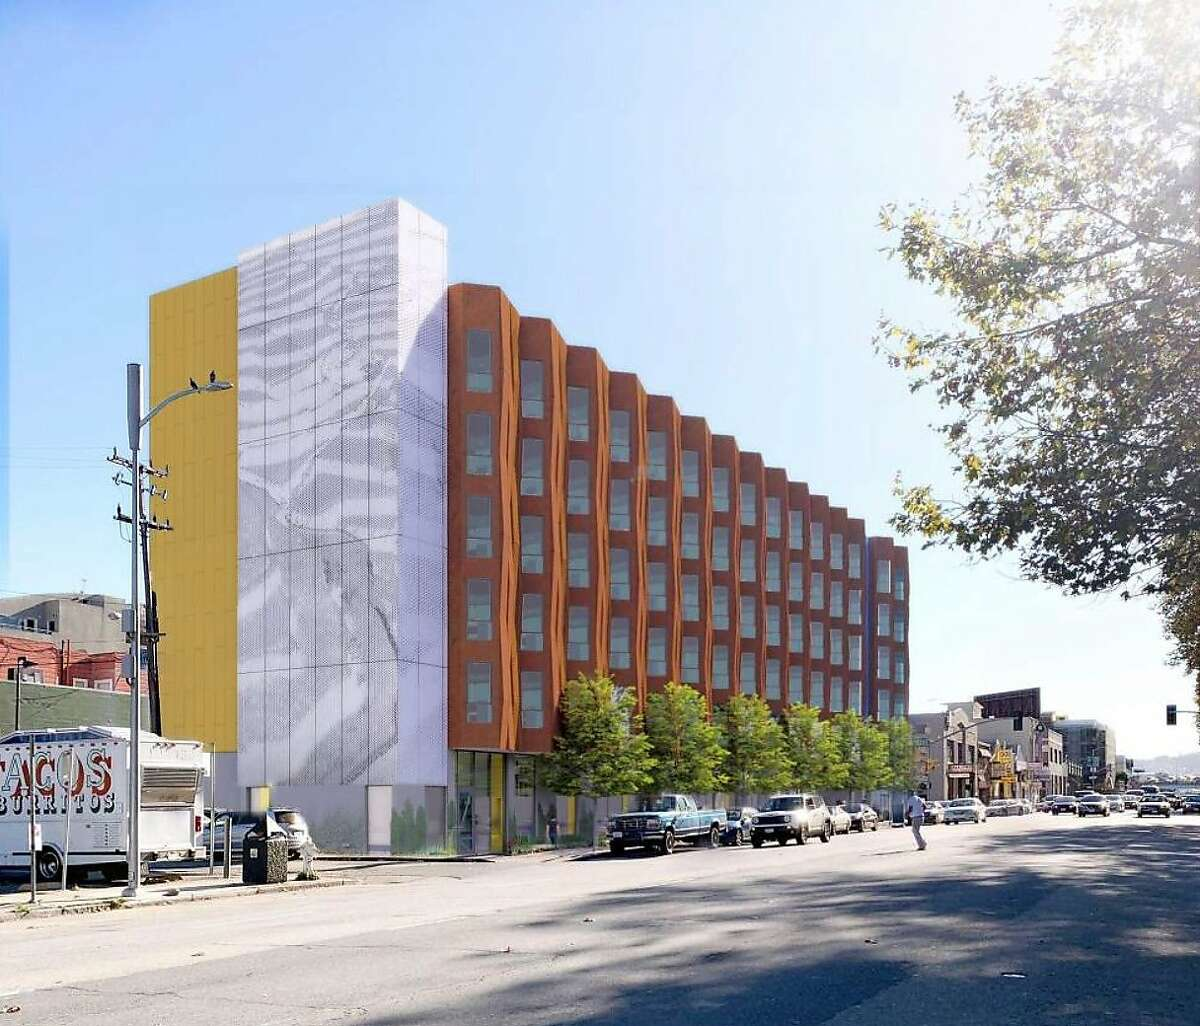 Charles and Helen Schwab have donated $65 million to a local nonprofit to build supportive housing for homeless people. One project will be a 145-unit apartment complex at 833 Bryant St. across from the Hall of Justice in San Francisco. This is a rendering of the building.